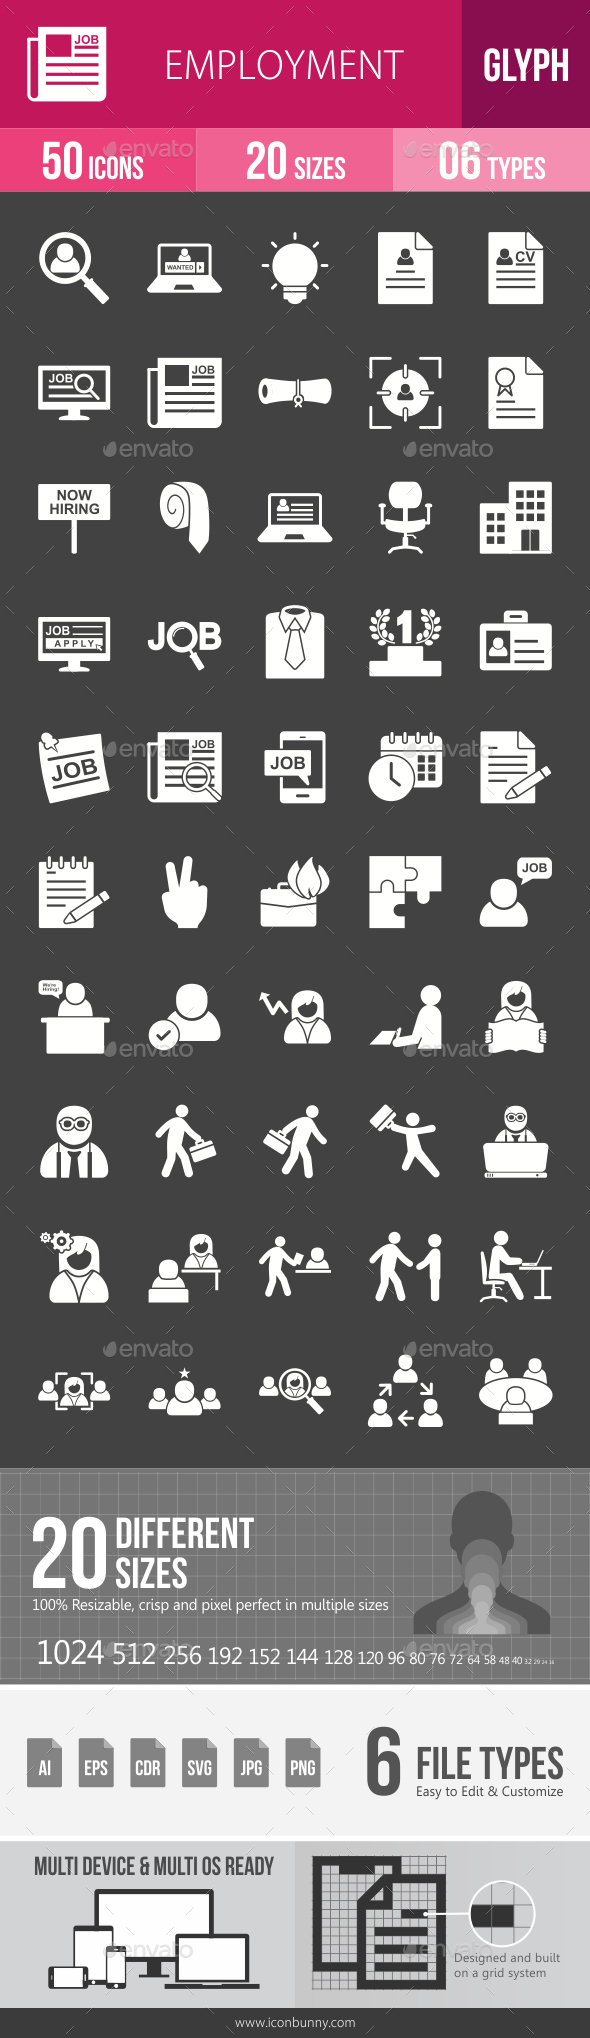 Employment Glyph Inverted Icons - Icons